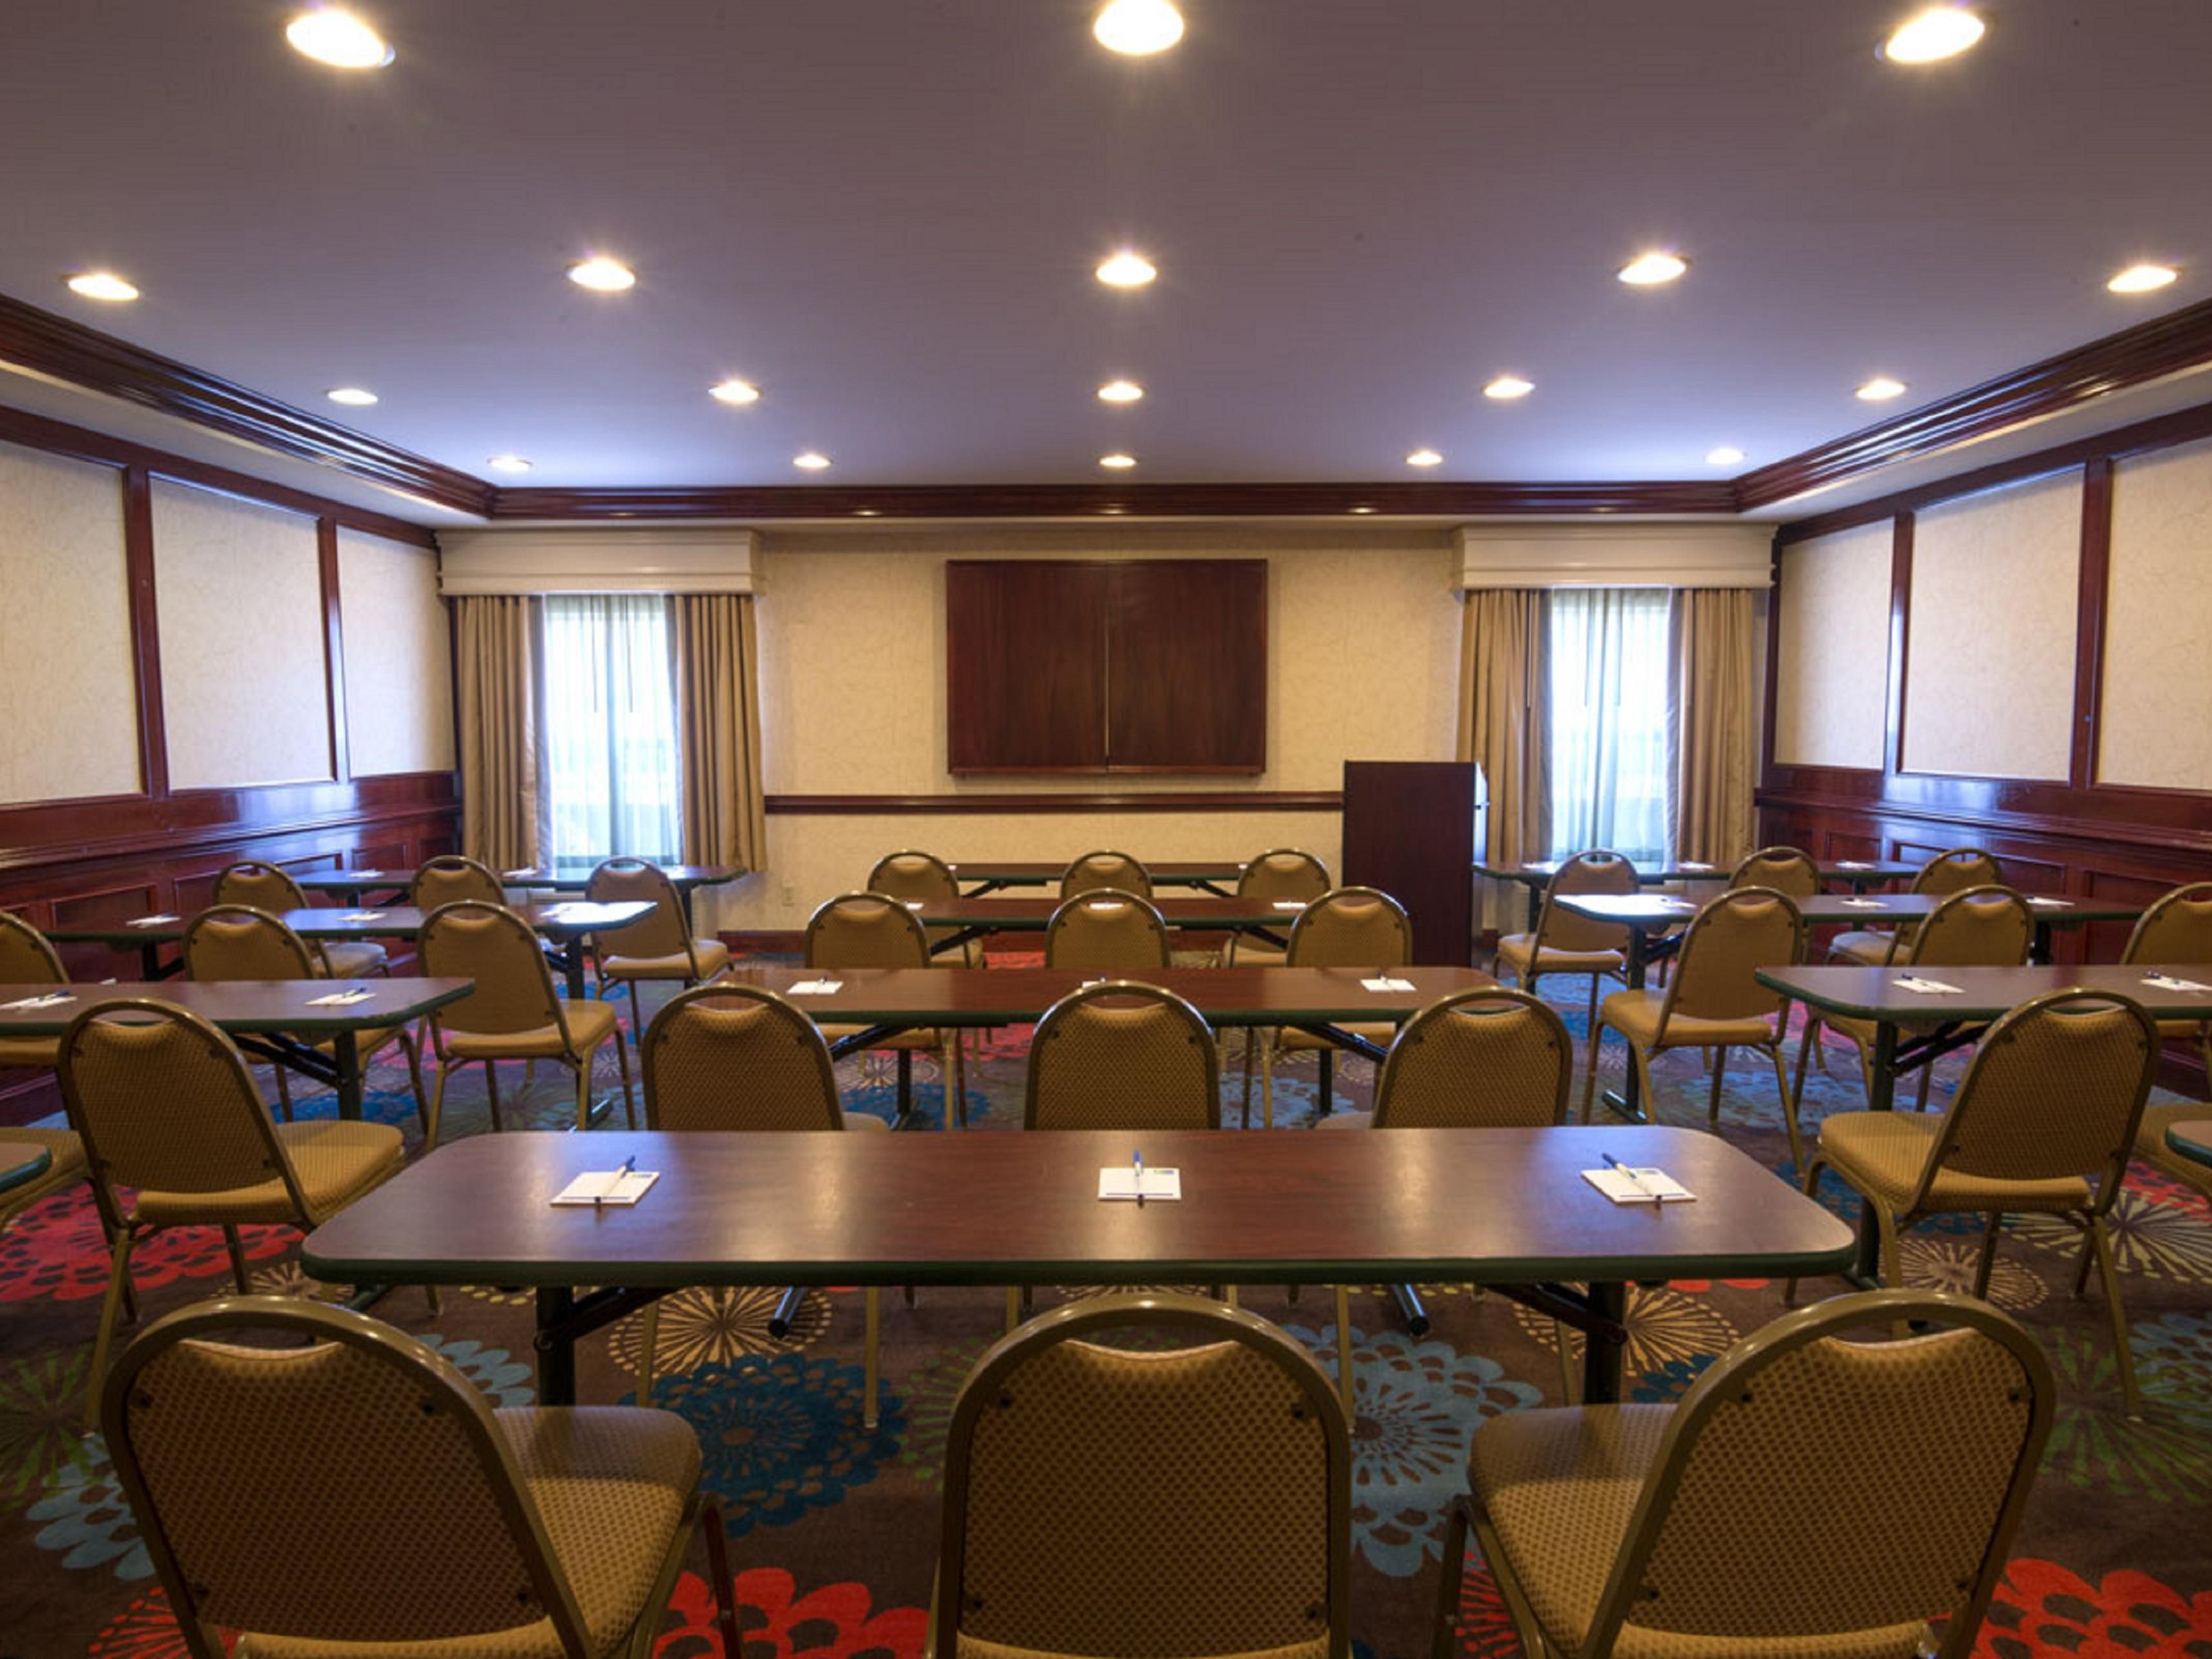 Meeting Room - seats 36 people classroom style